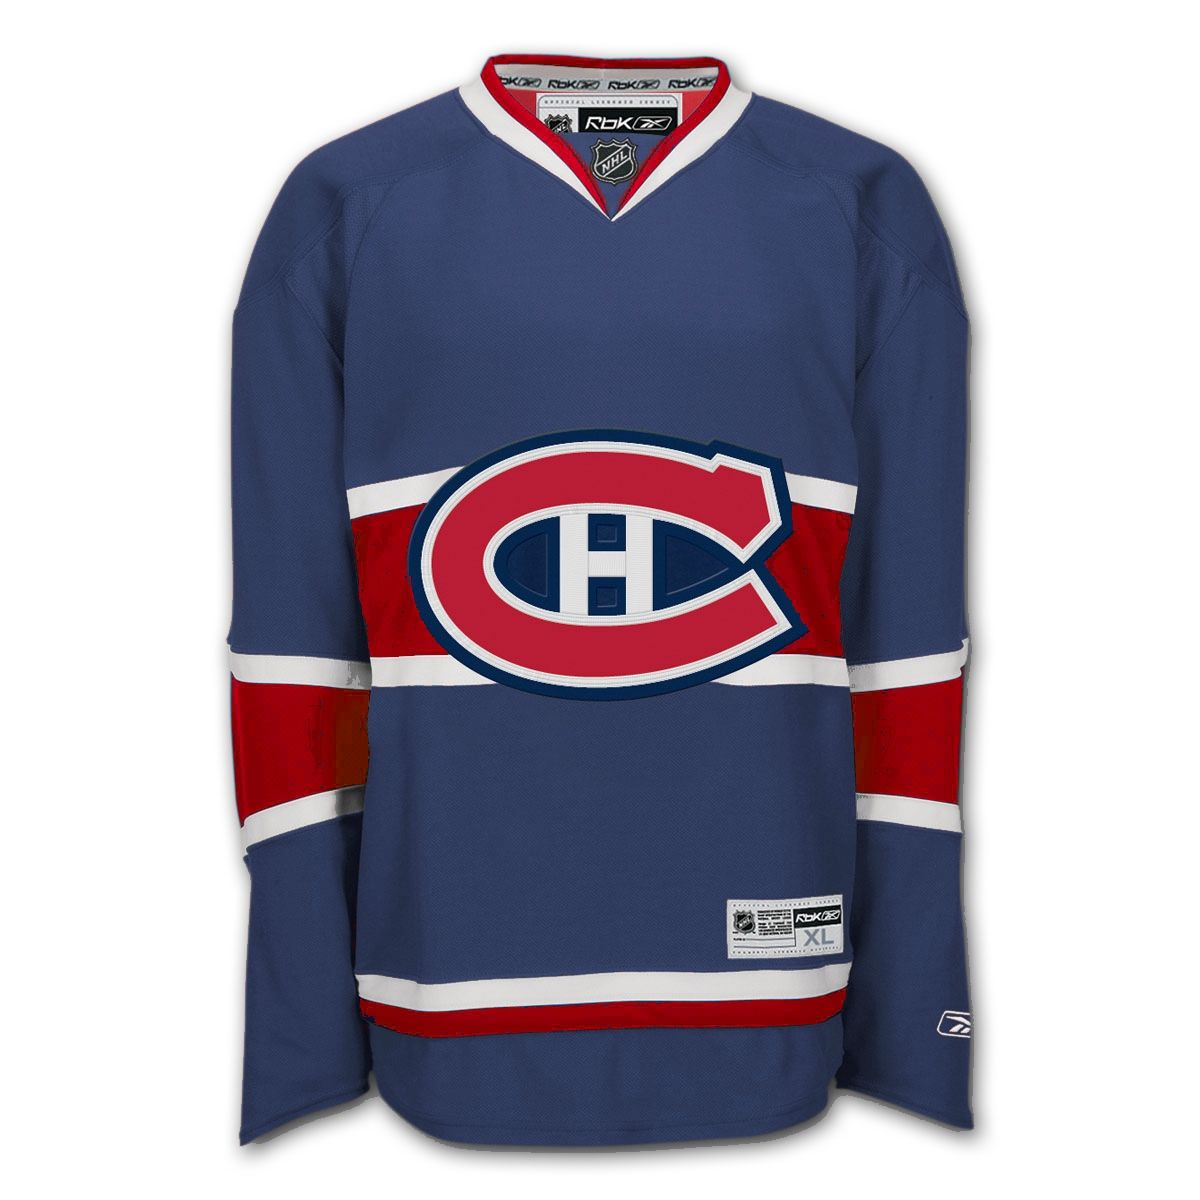 montreal canadiens jersey history - Google Search  1c77ed1bd03